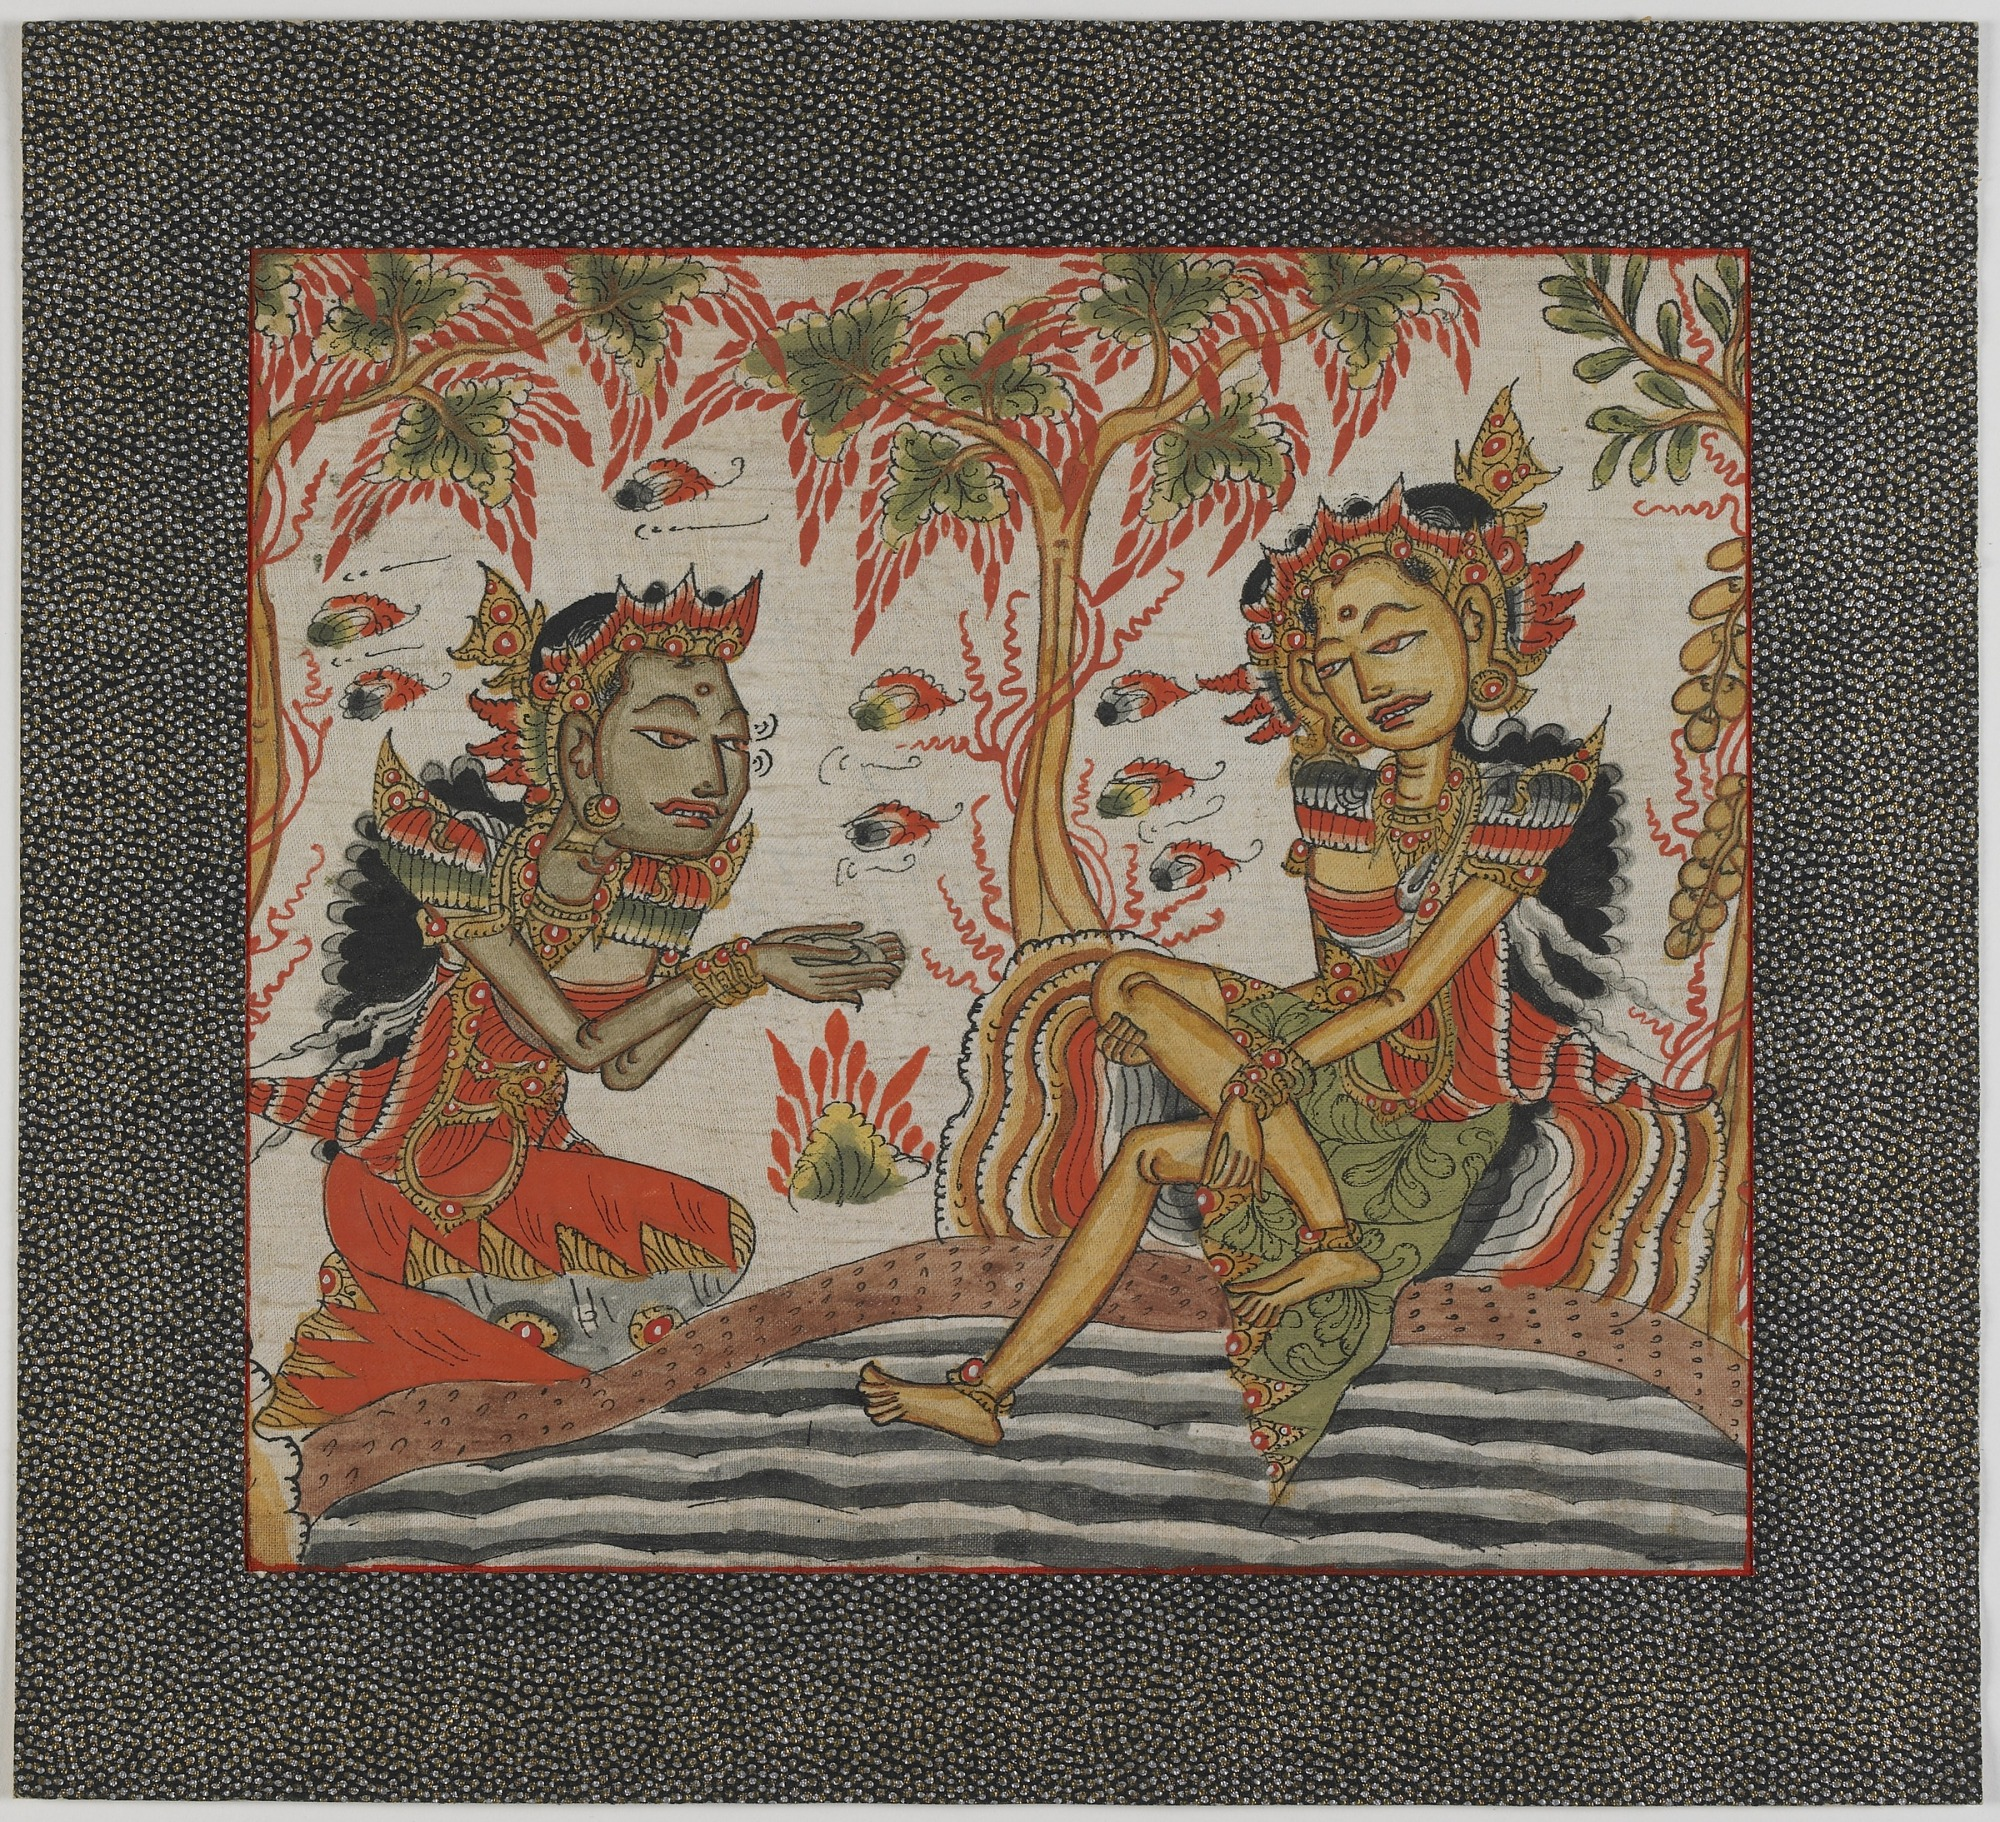 : Two Figures Conversing Beside a River